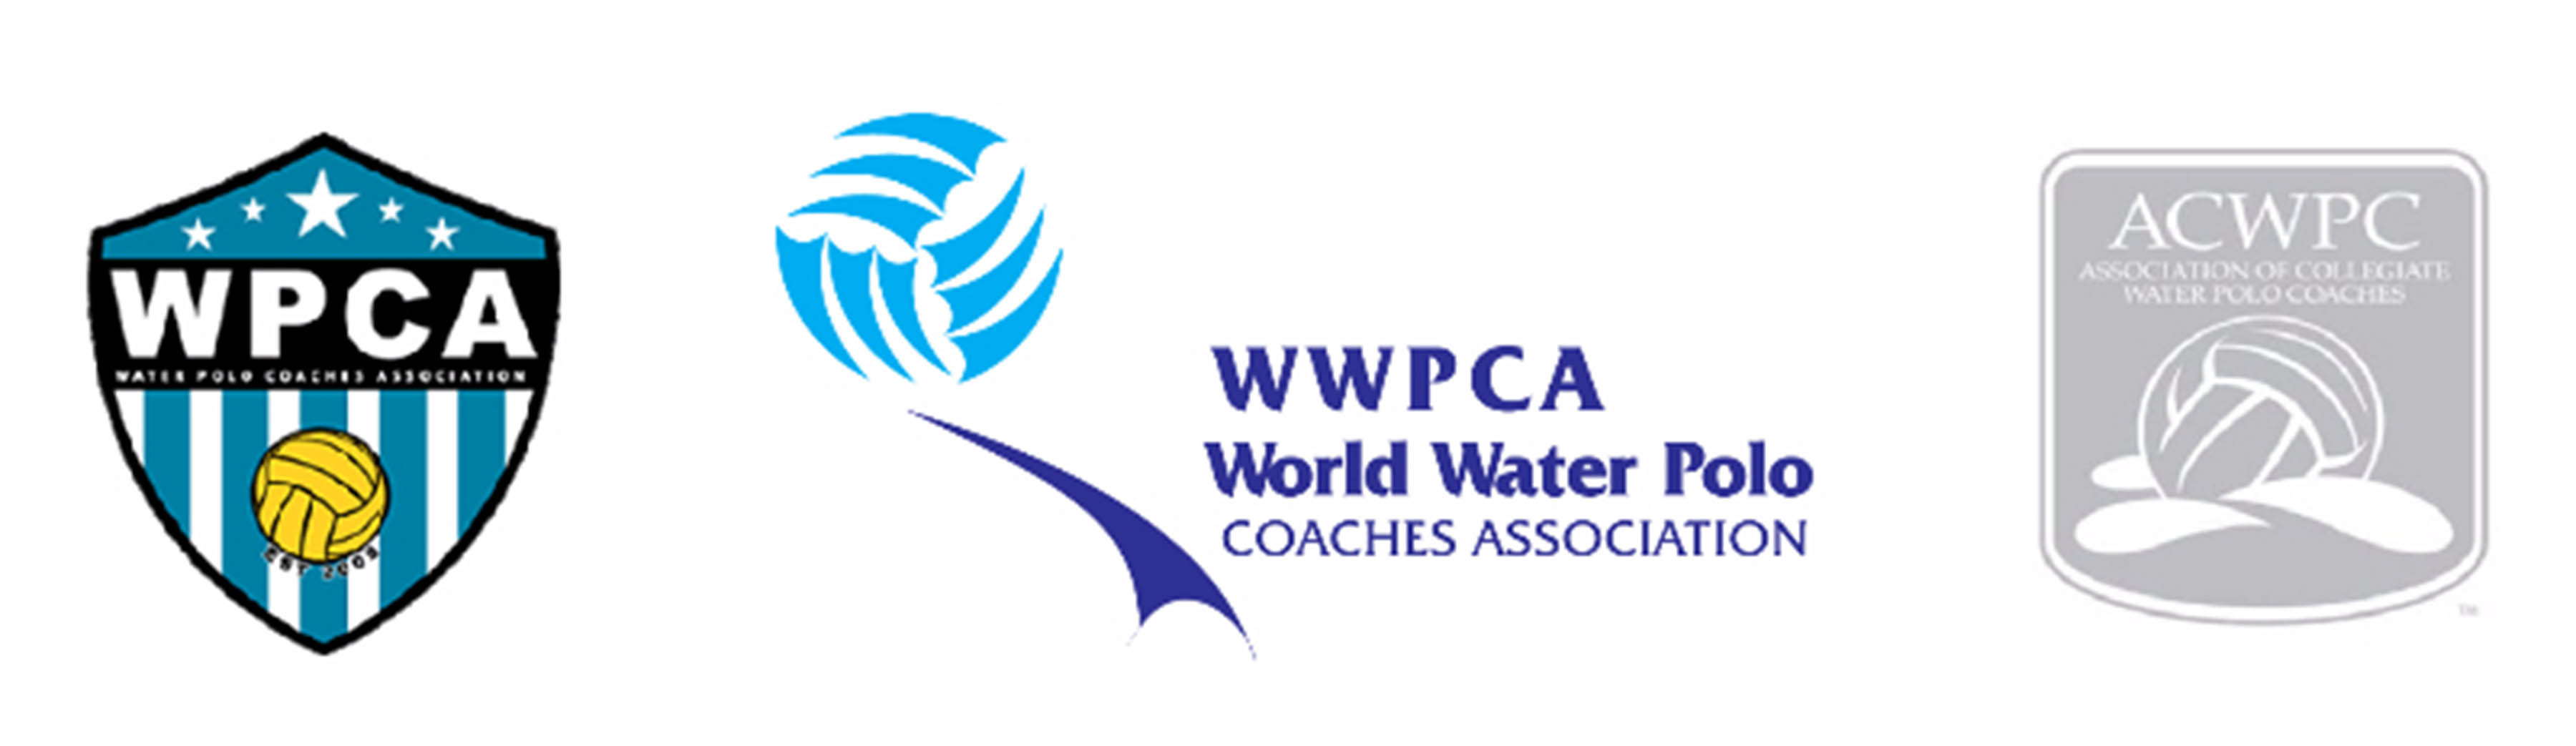 WWPCA partners with WPCA and ACWPC